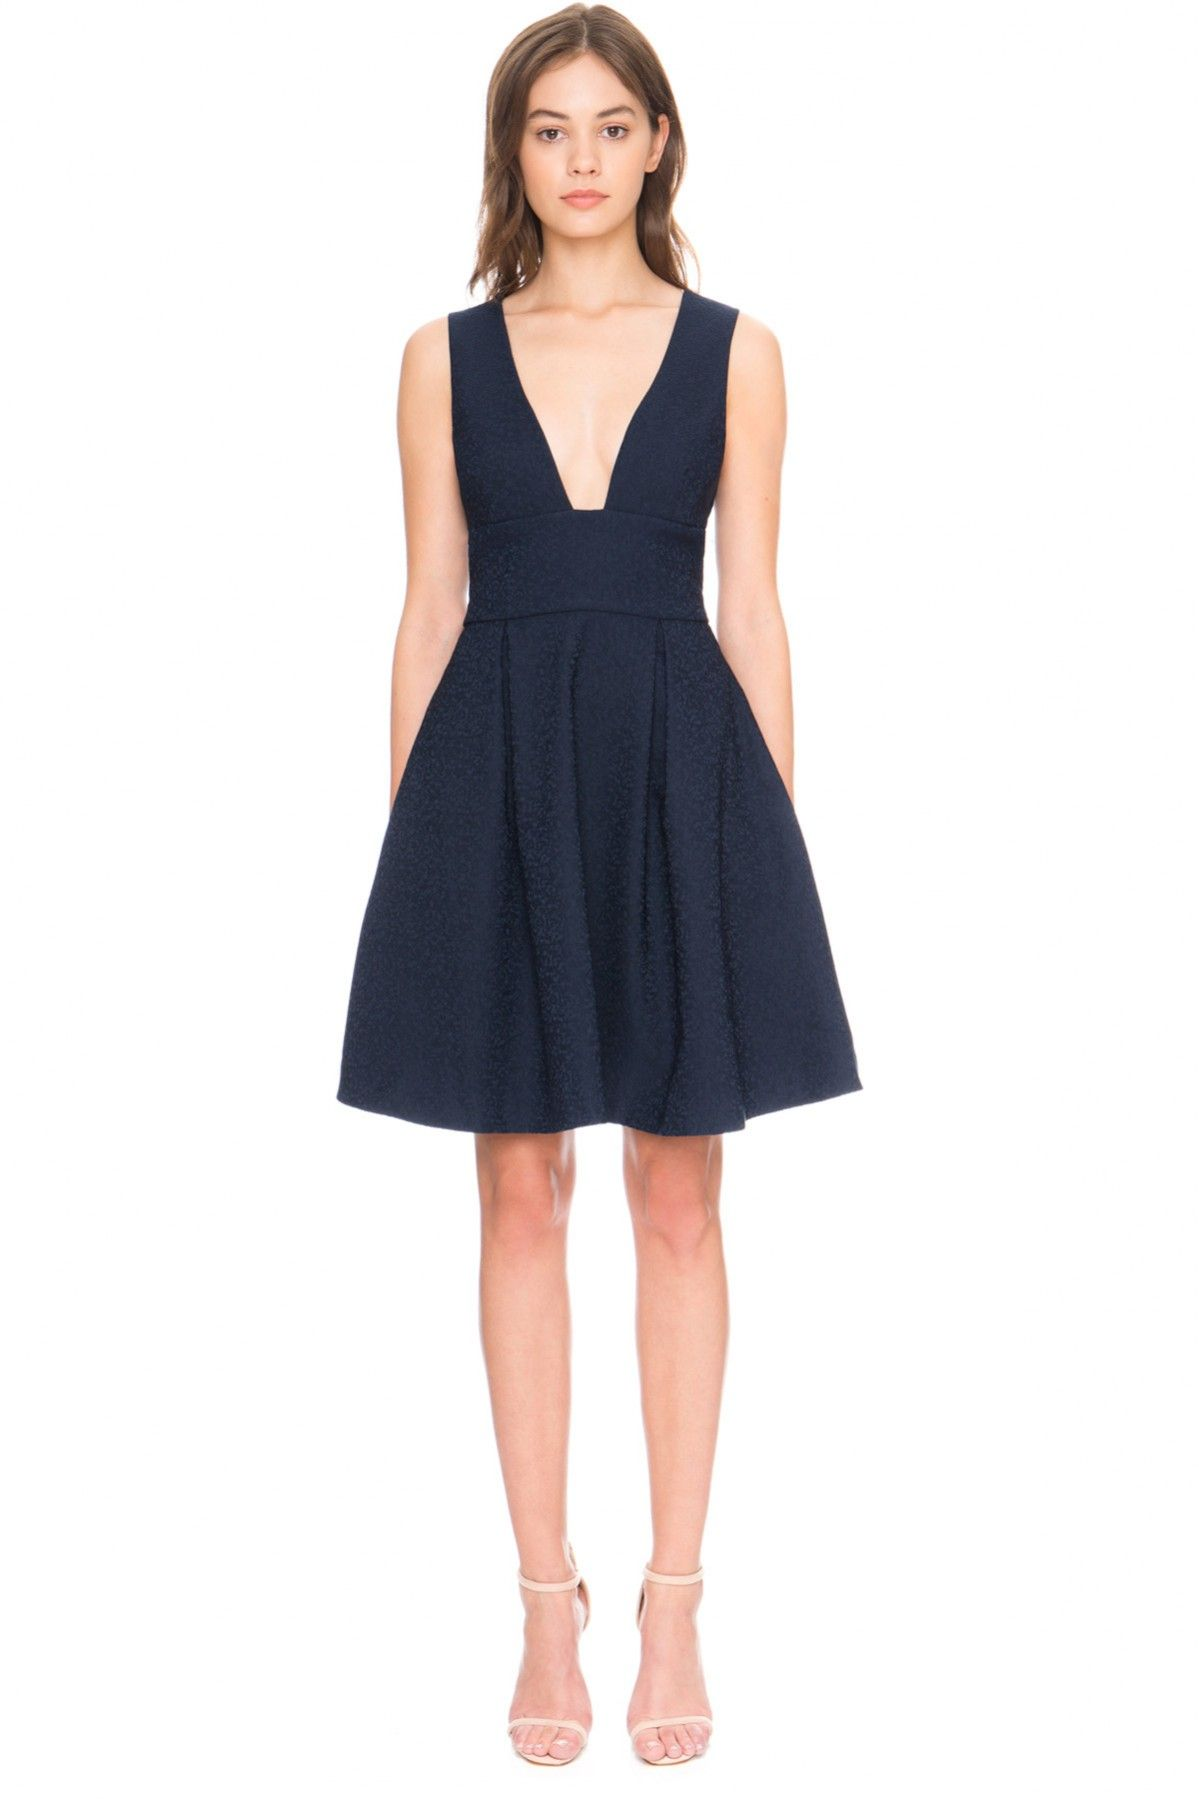 Shake up dress keepsakes navy and formal